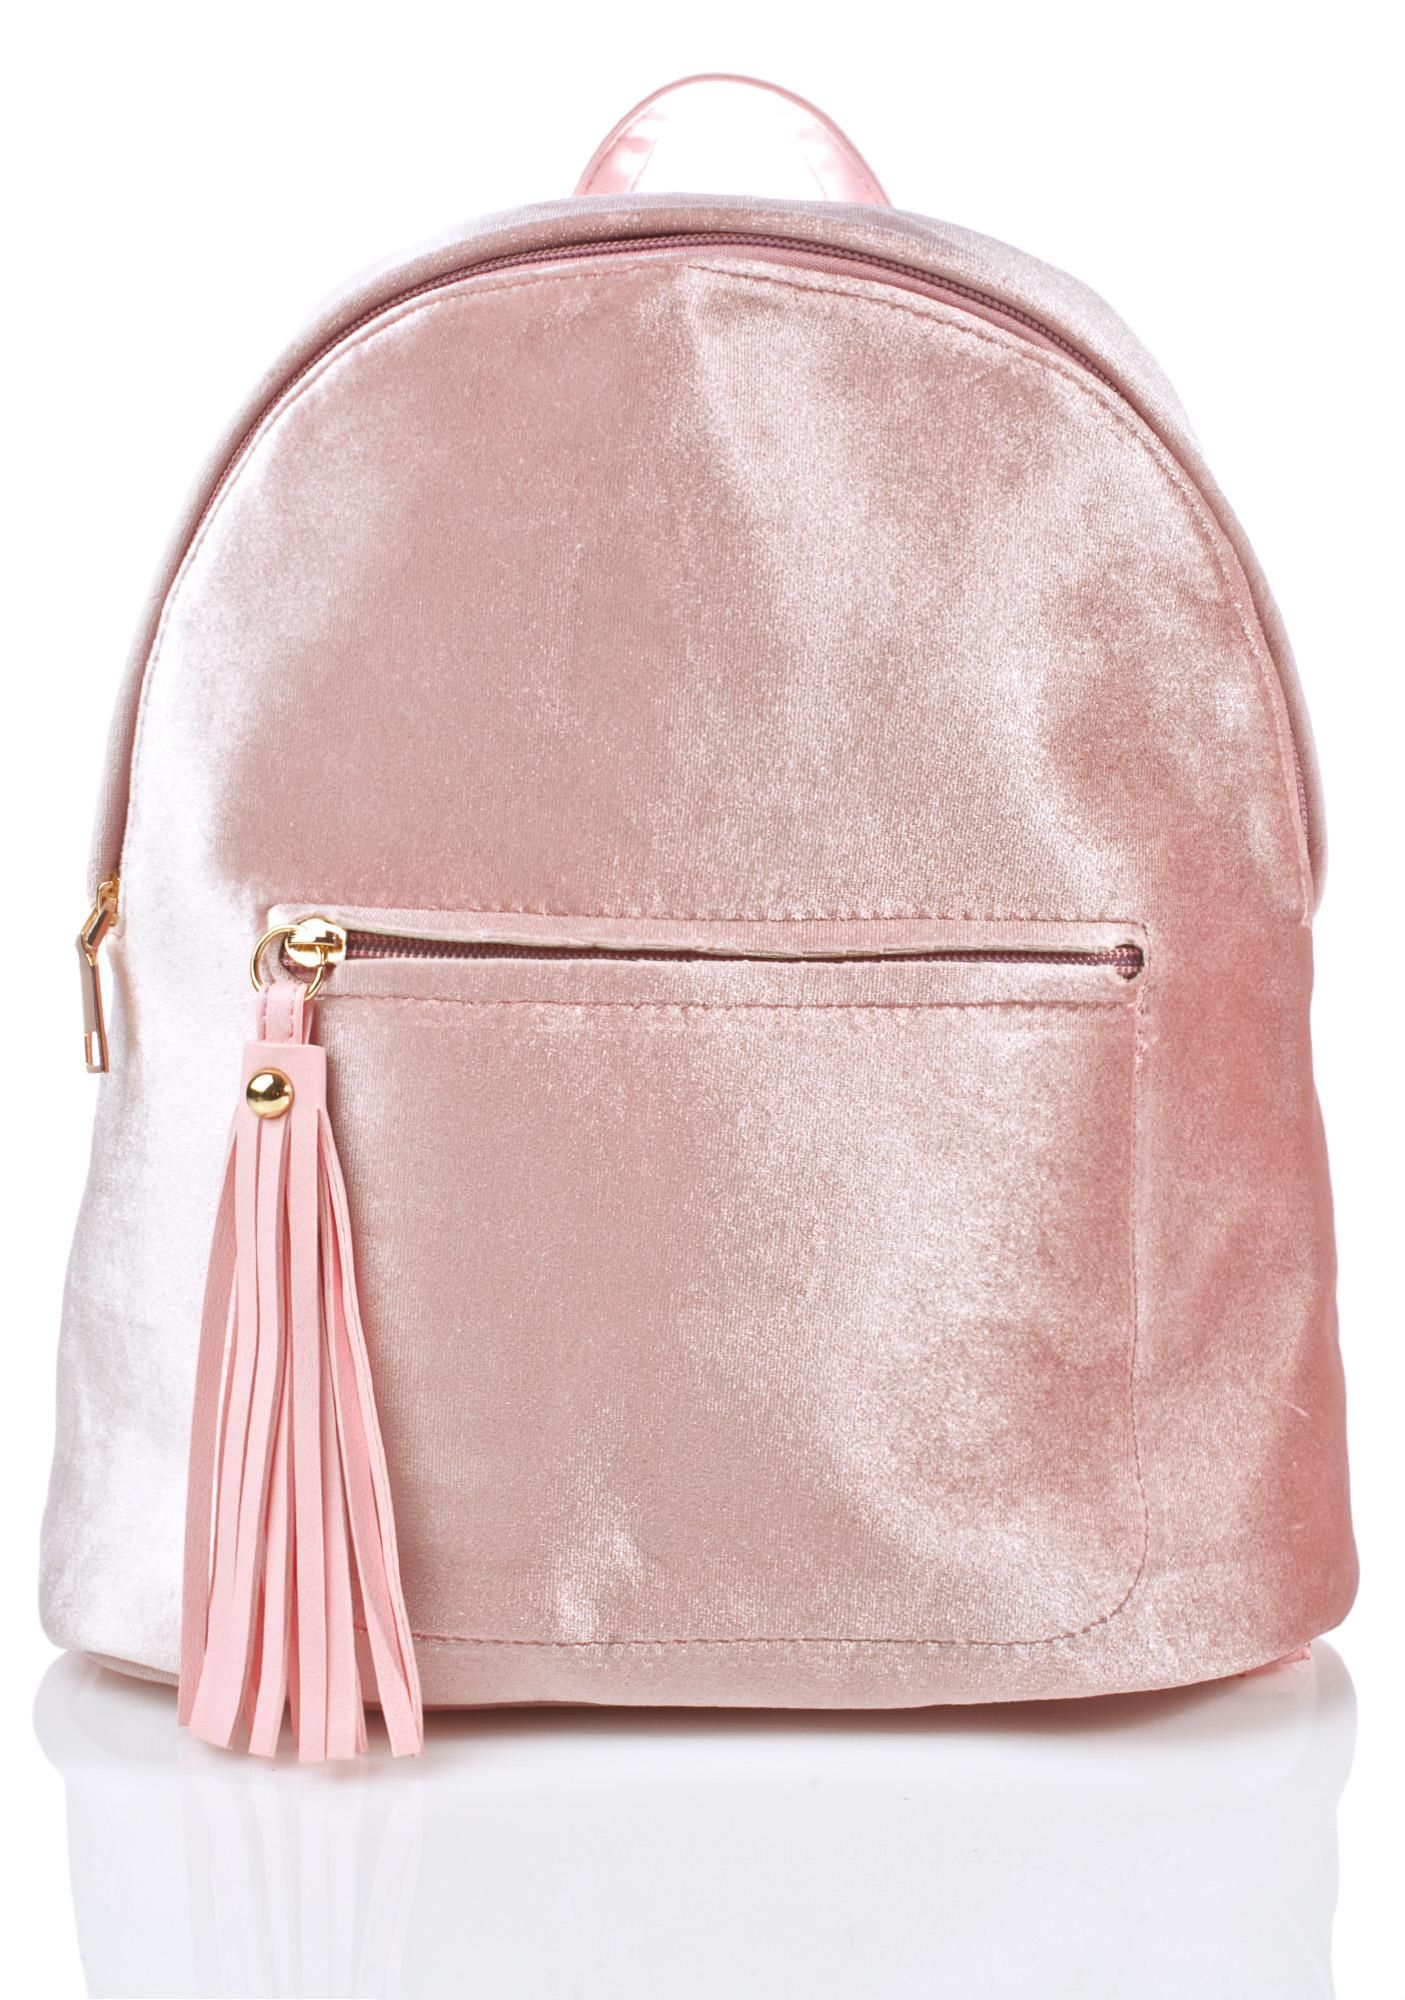 Endless Love Mini Backpack Satin bags, Trendy backpacks